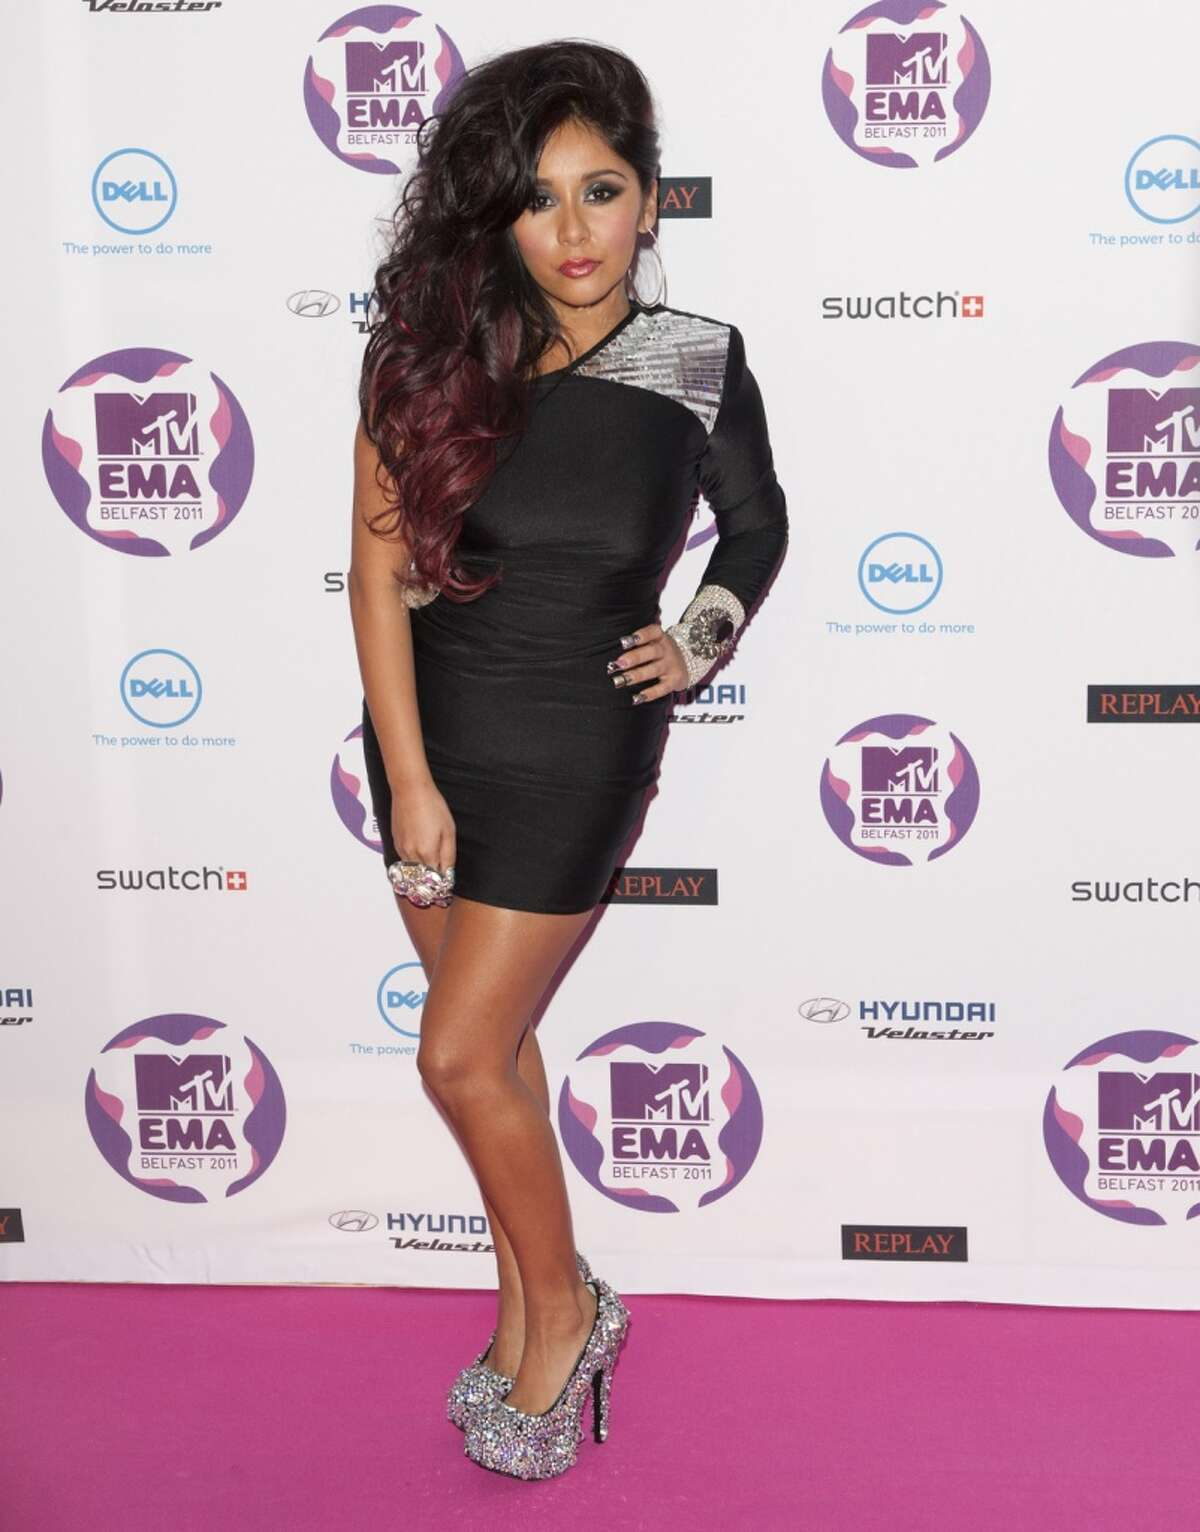 Snookie Of The Jersey Shore Arriving For The 2011 Mtv Europe Music Awards At The Odyssey Arena, Belfast. (Photo by Mark Cuthbert/UK Press via Getty Images)